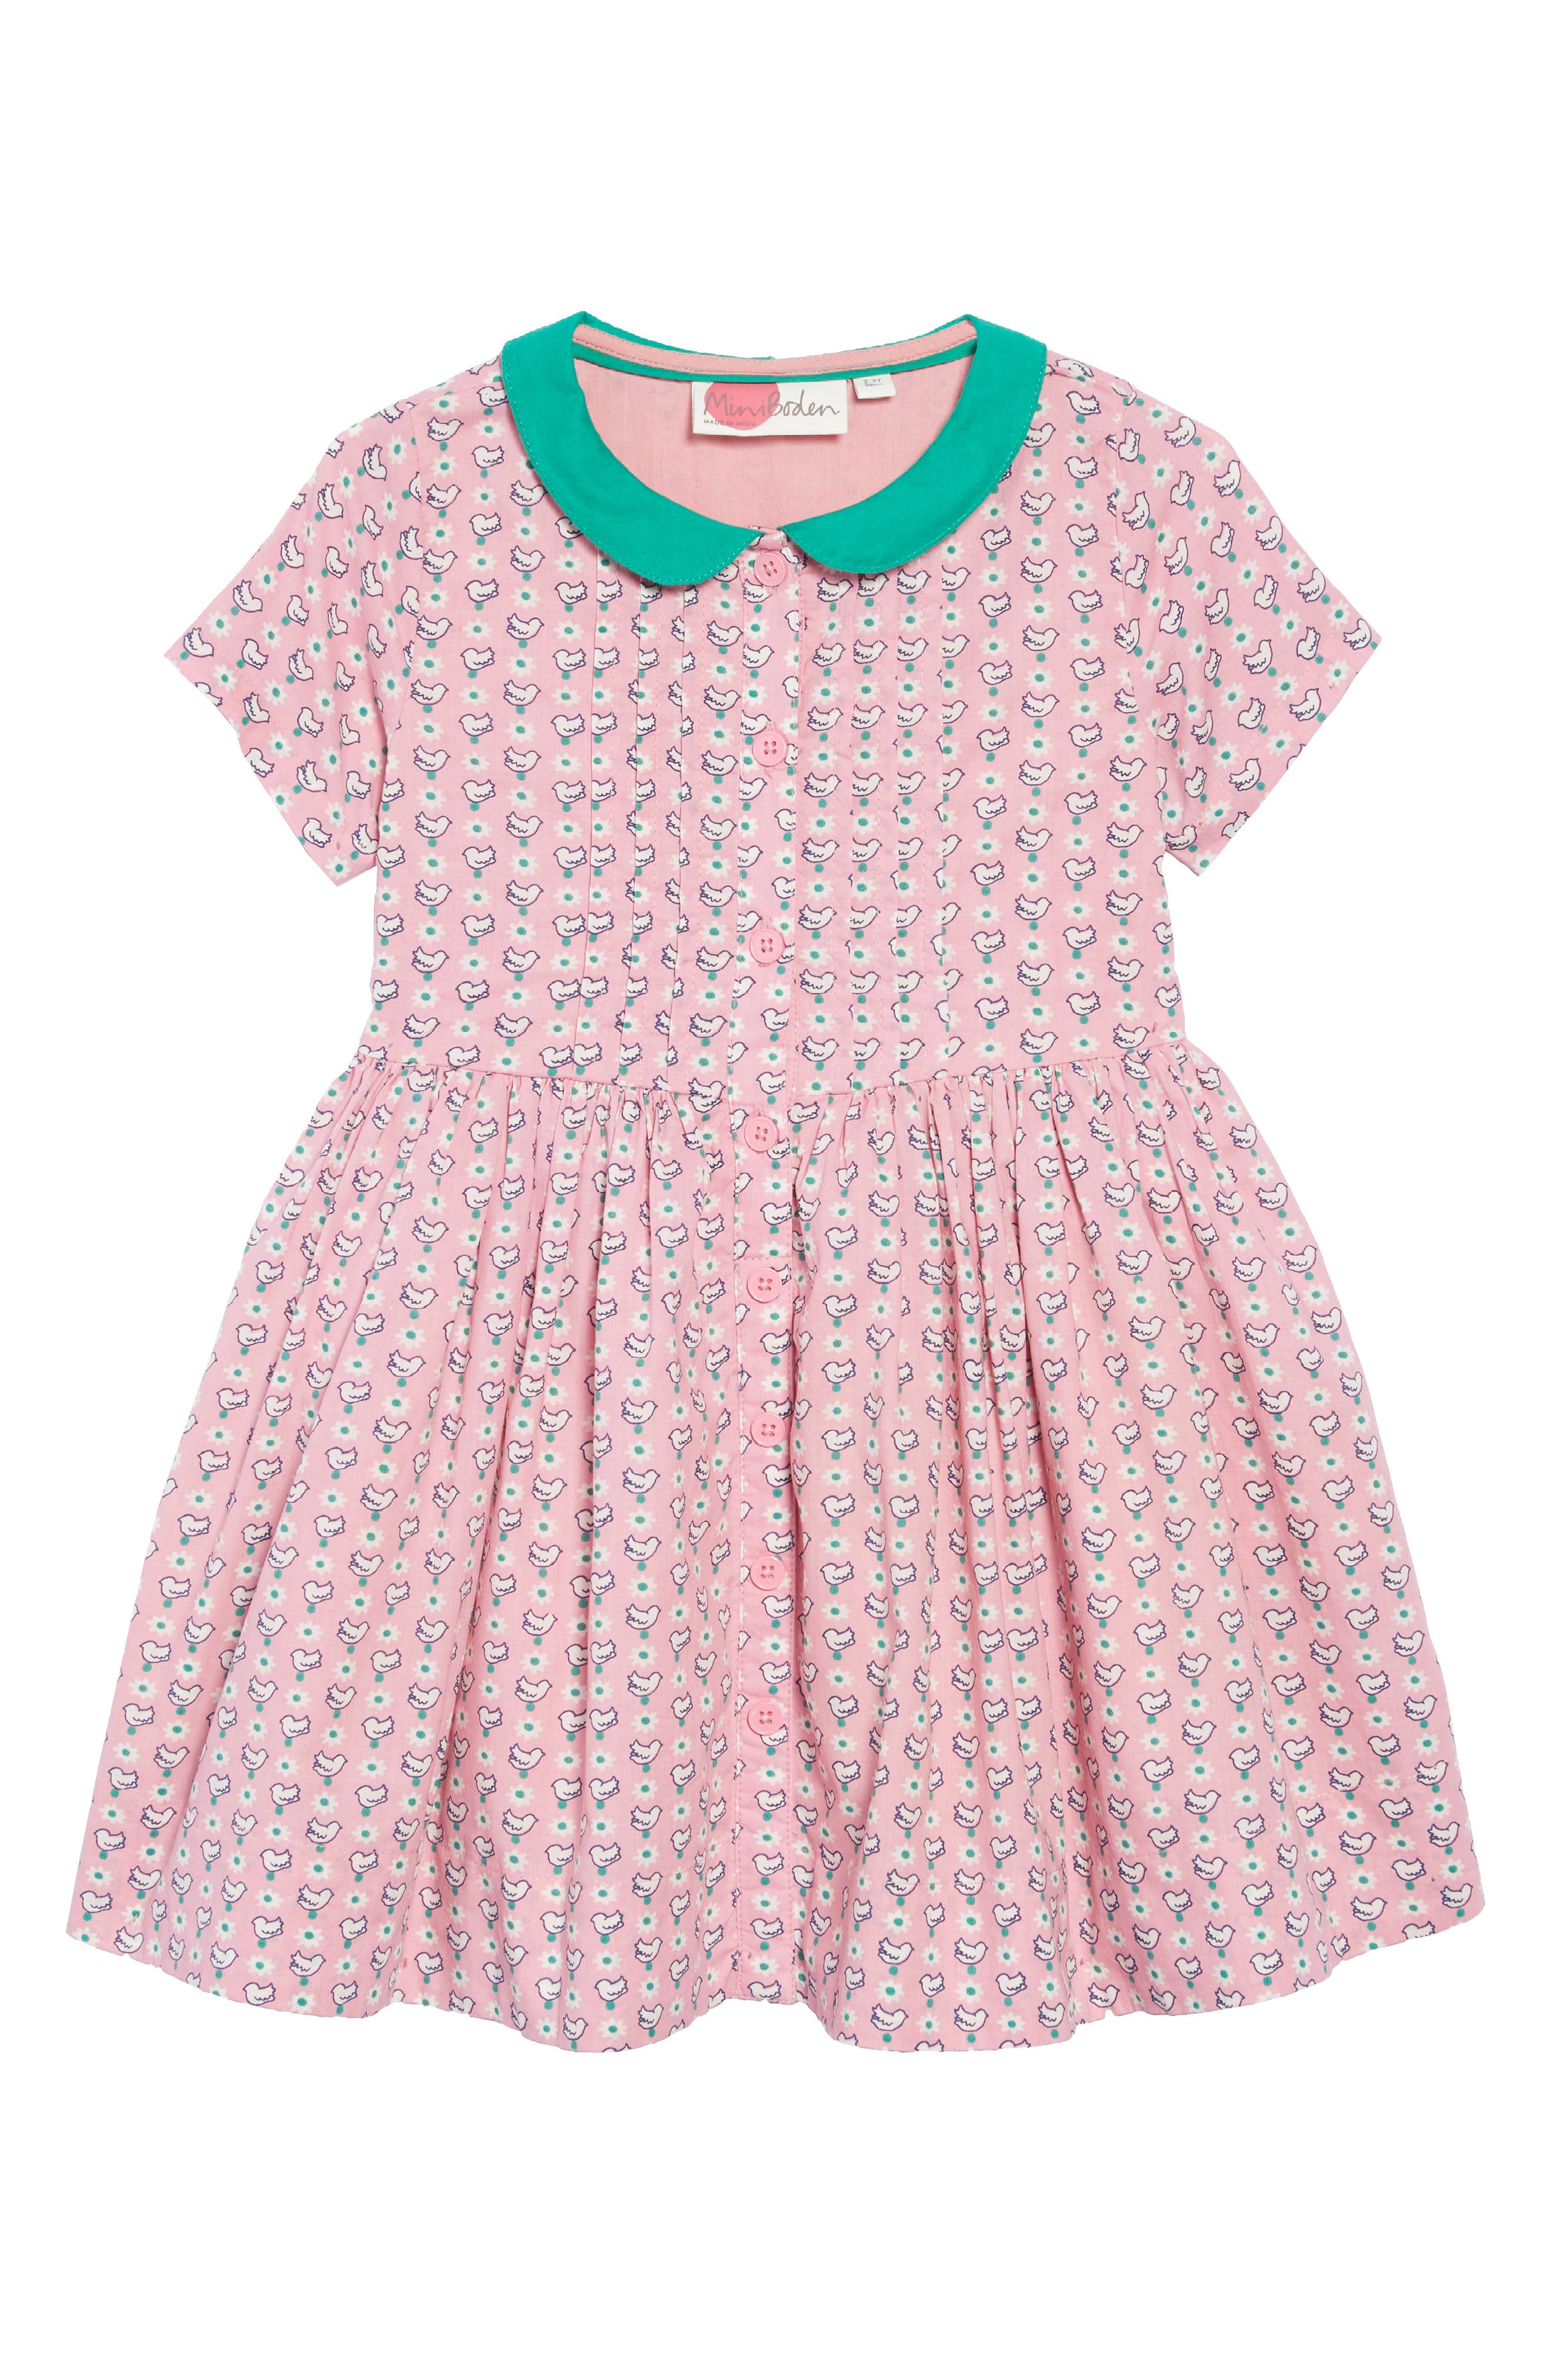 Nostalgic Collared Dress,                         Main,                         color, FORMICA PINK GEO BIRDS